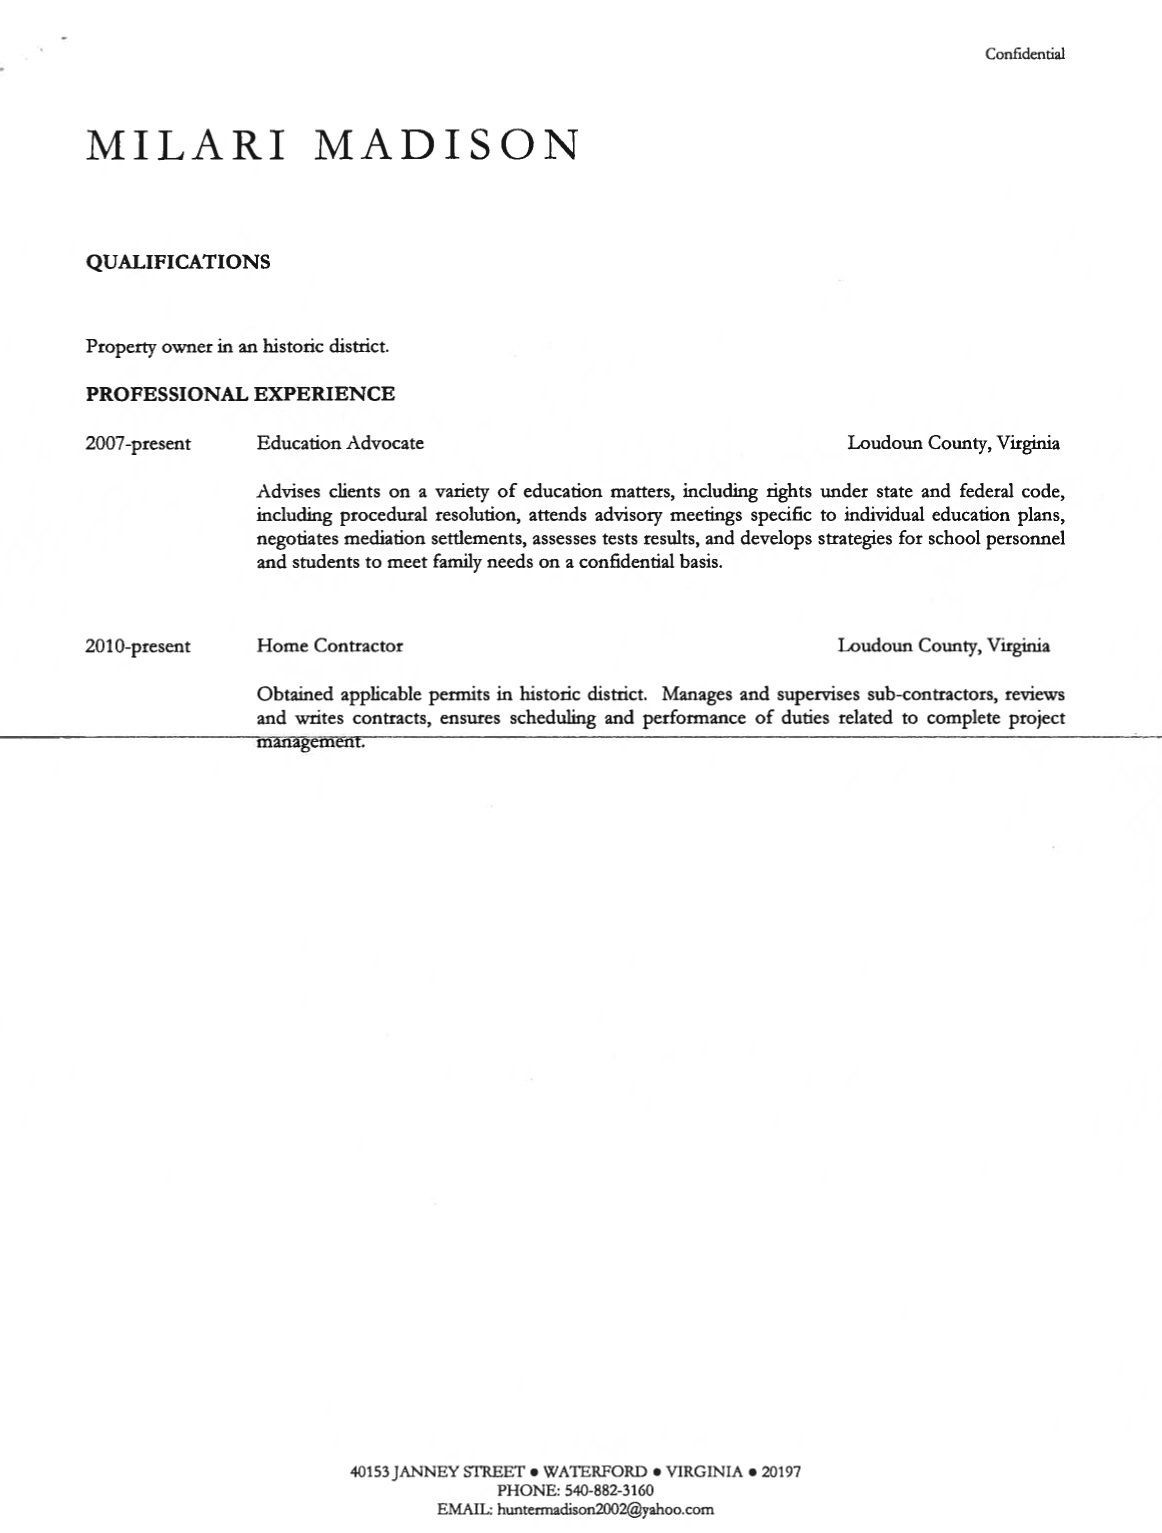 Examples Of Qualifications On A Resume  resume examples  resume       resume soymujer co